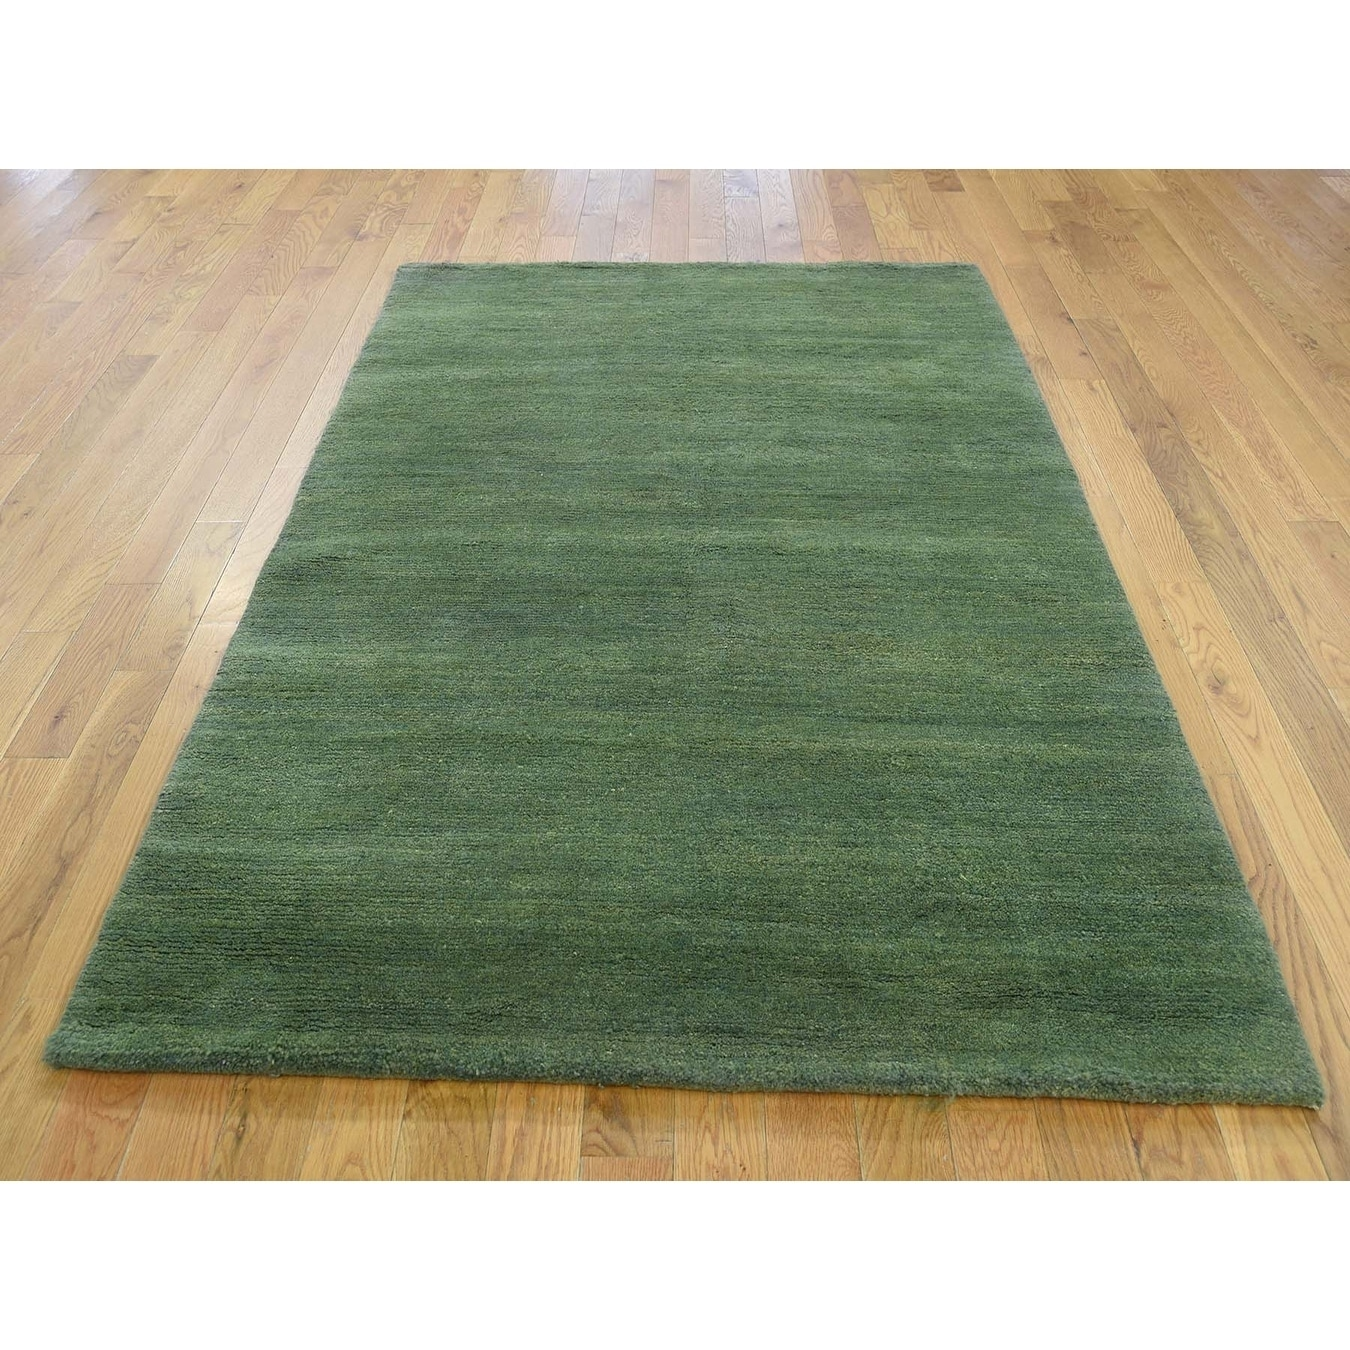 Hand Knotted Green Clearance with Wool Oriental Rug - 4 x 6